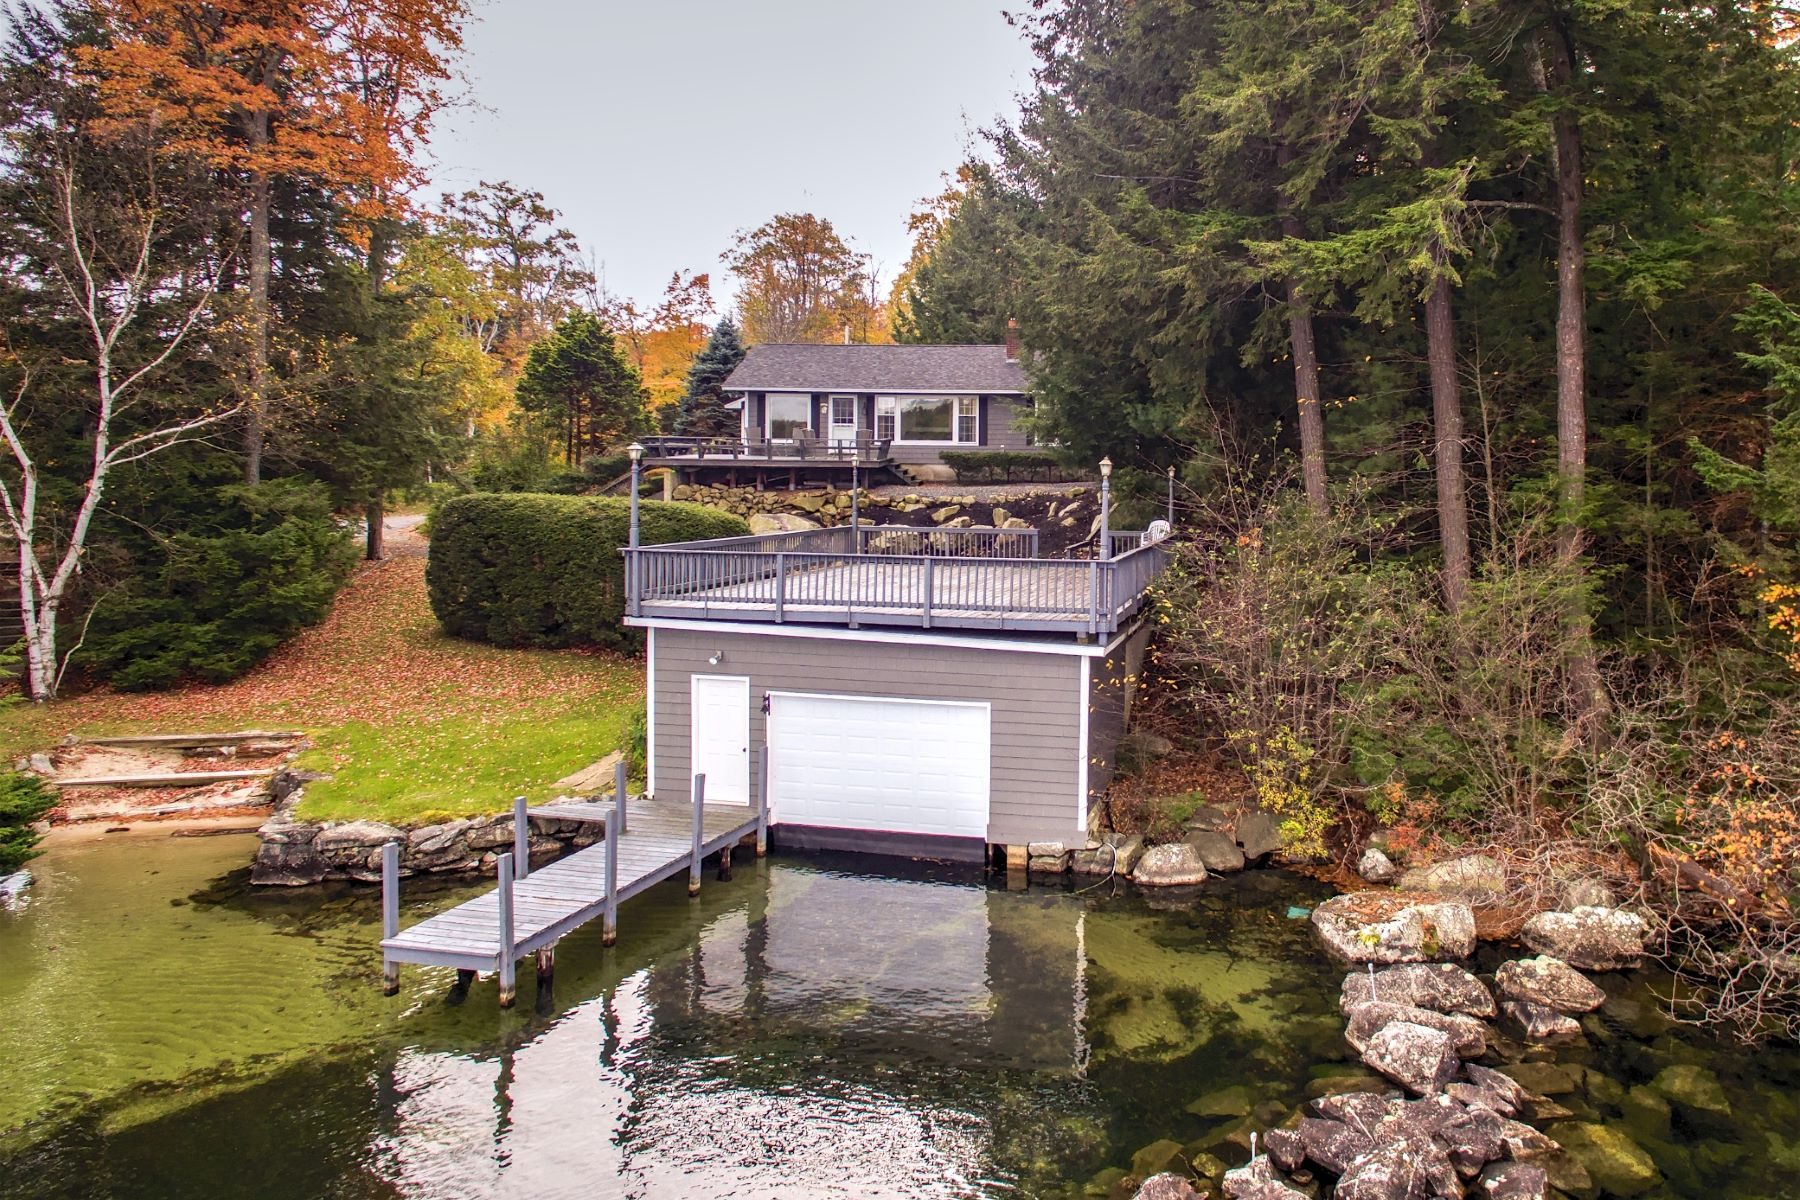 Casa Unifamiliar por un Venta en Lake Winnipesaukee waterfront home 1 Garden Park Alton, Nueva Hampshire 03810 Estados Unidos